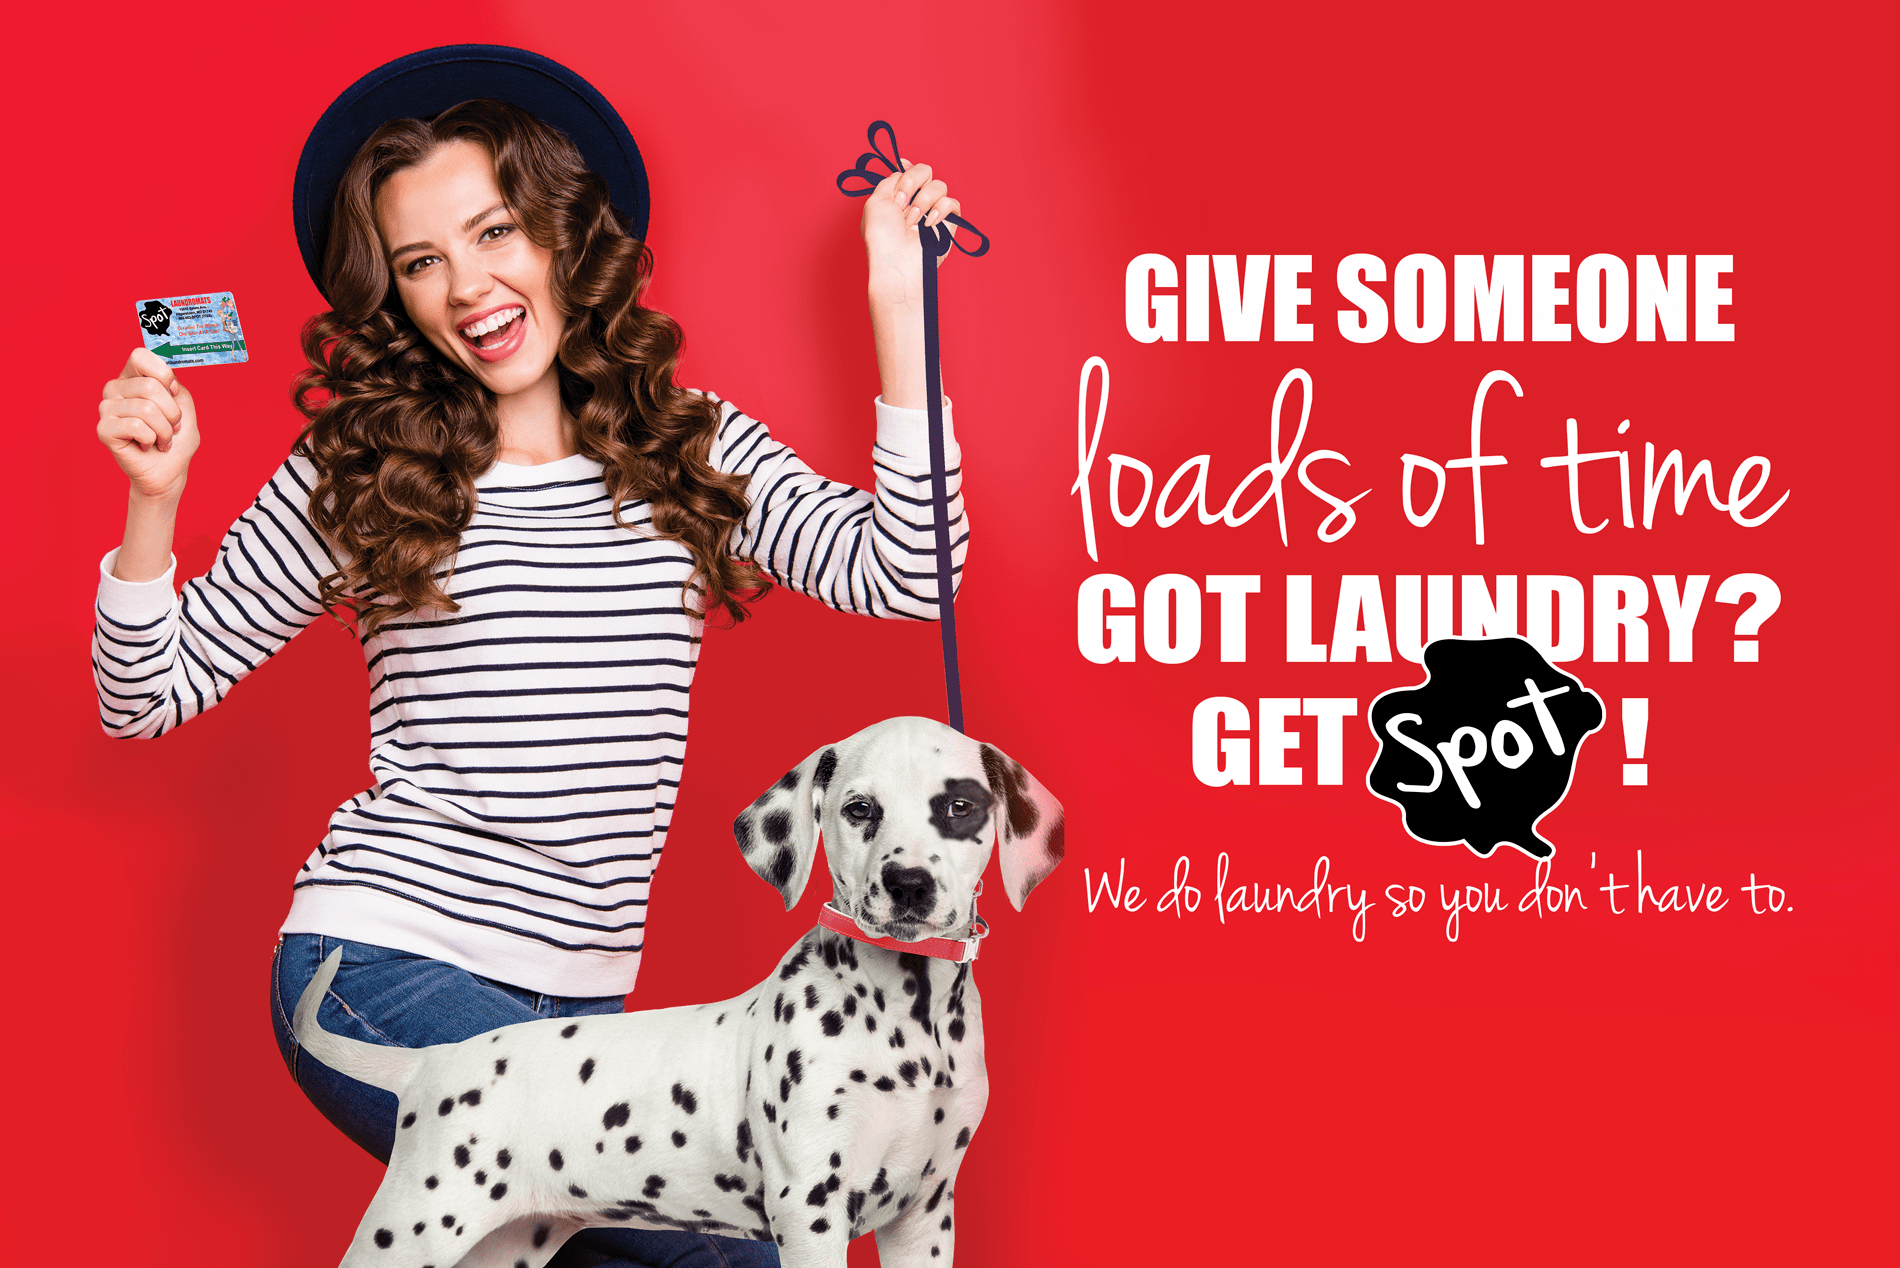 Give someone loads of time. Got laundry get spot gift cards